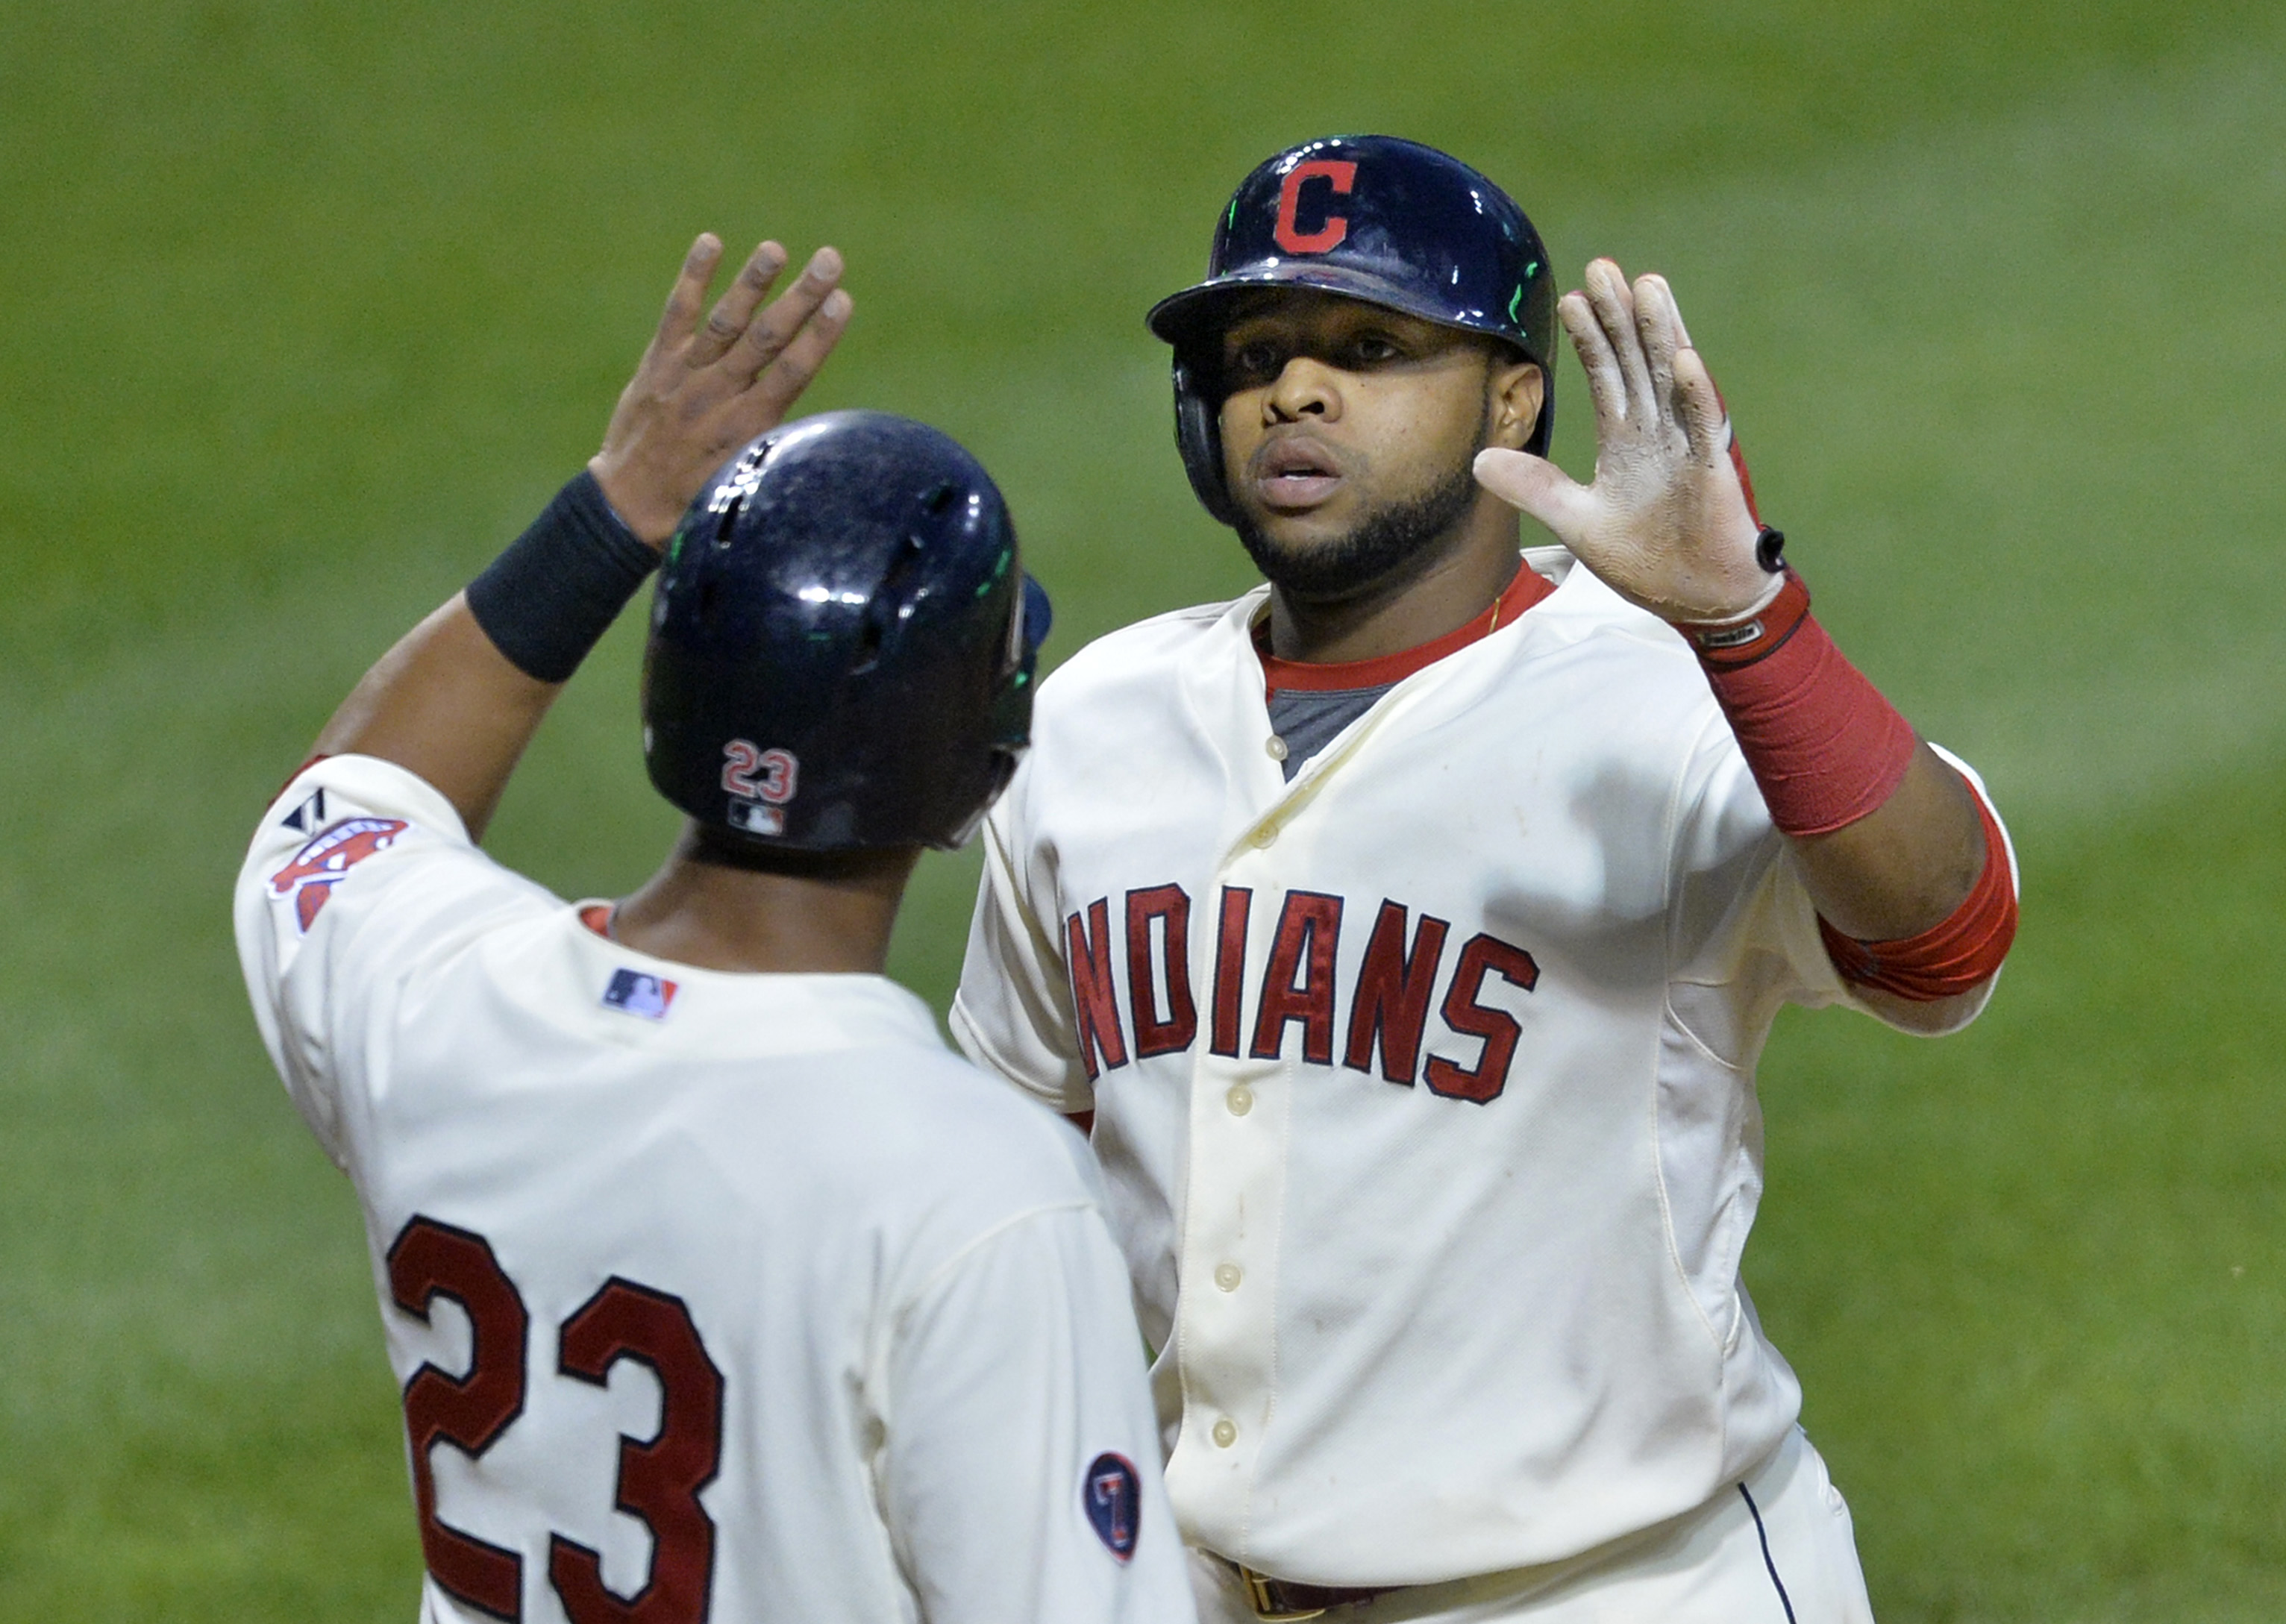 Will Michael Brantley and Carlos Santana help lead the Tribe to a top finish in the AL Central?